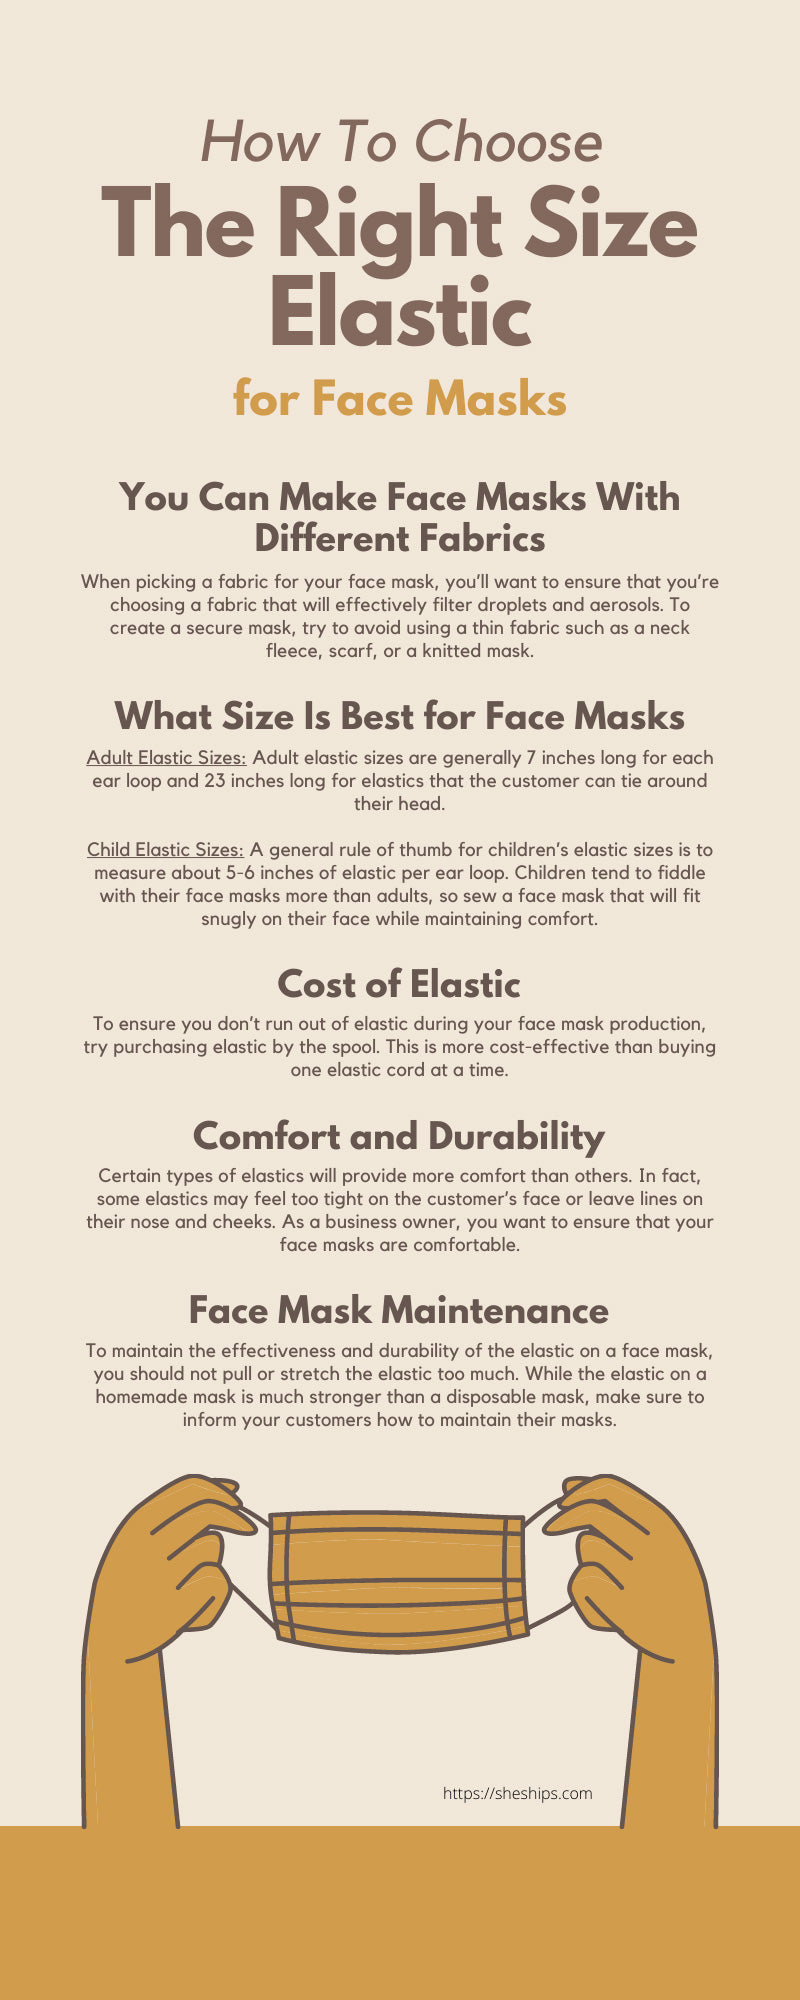 How To Choose the Right Size Elastic for Face Masks